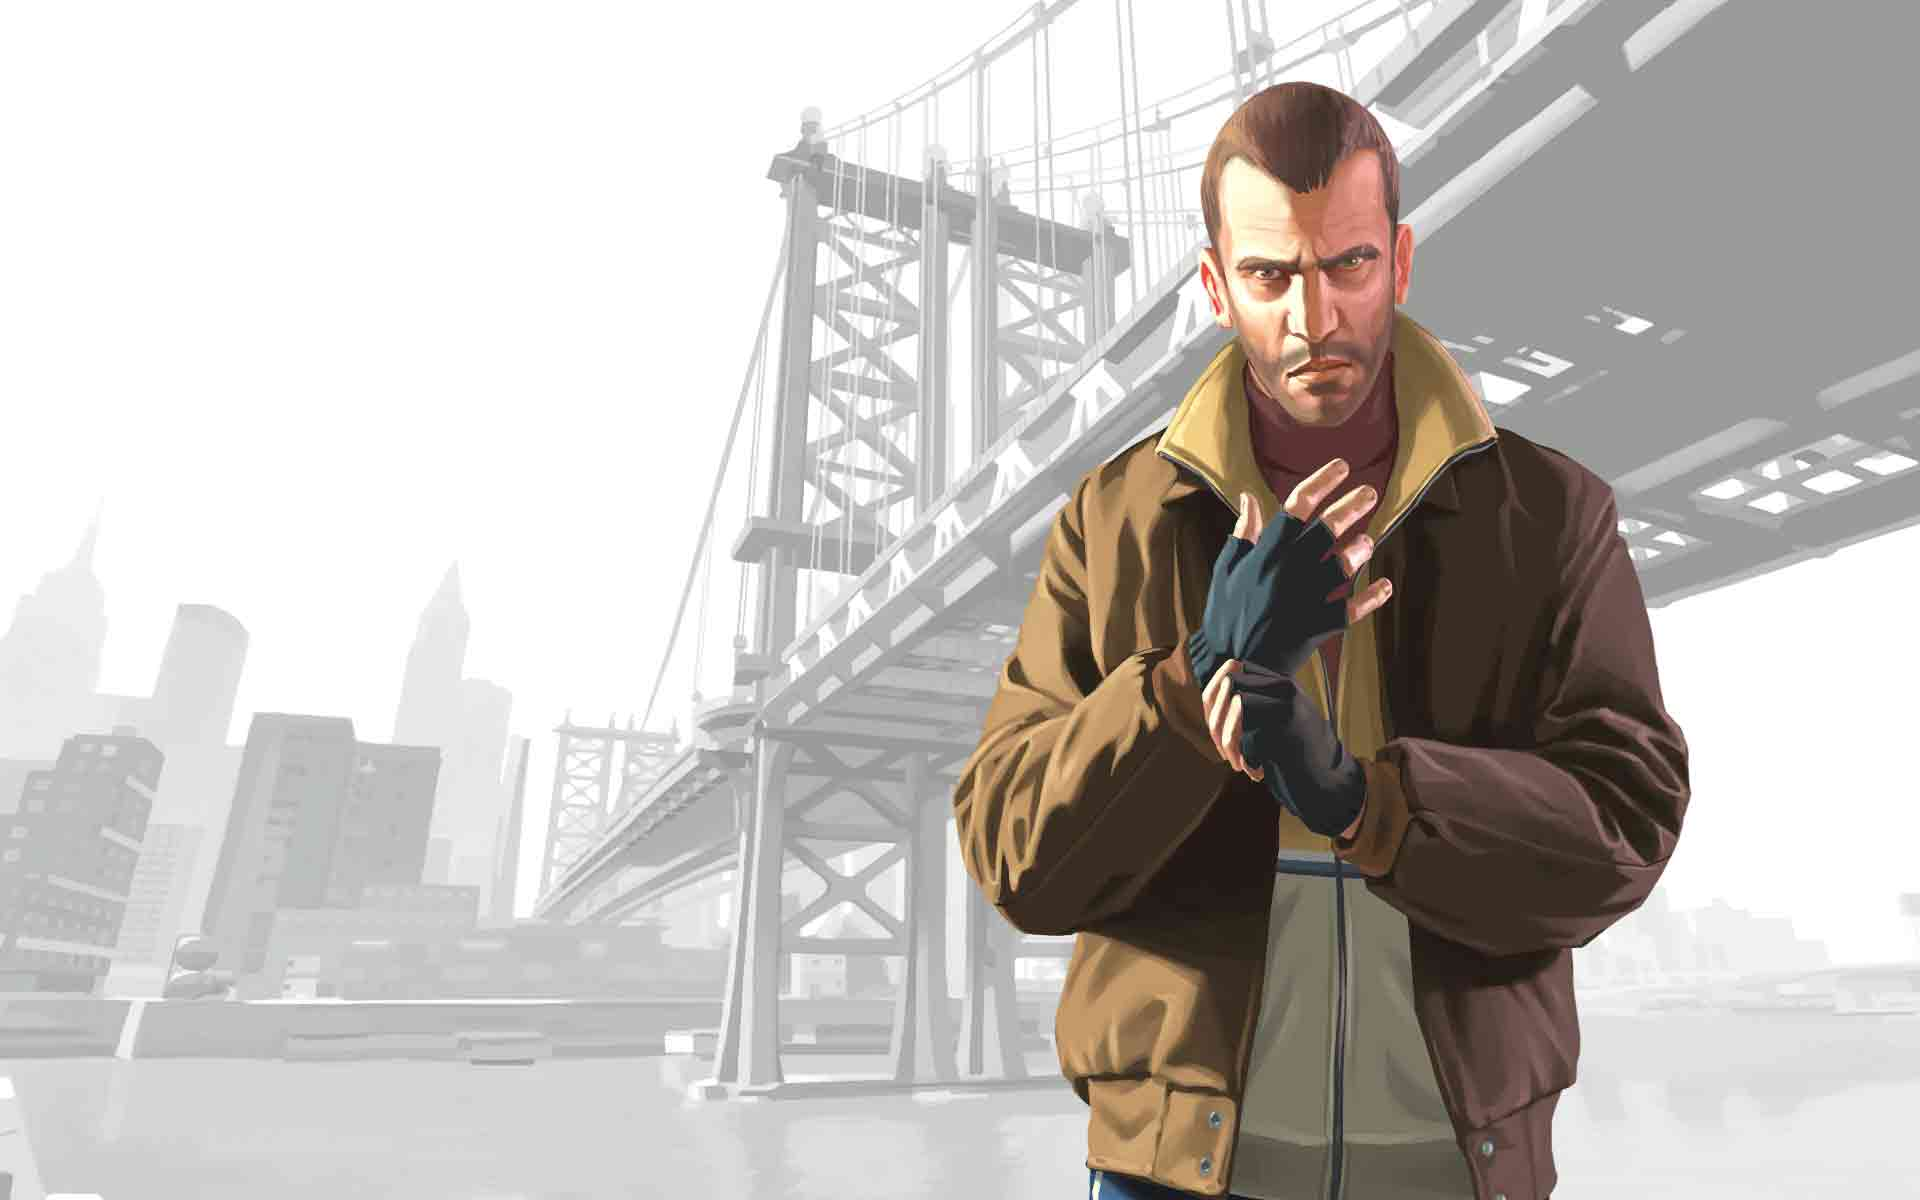 Gta4 Wallpapers - Wallpaper Cave